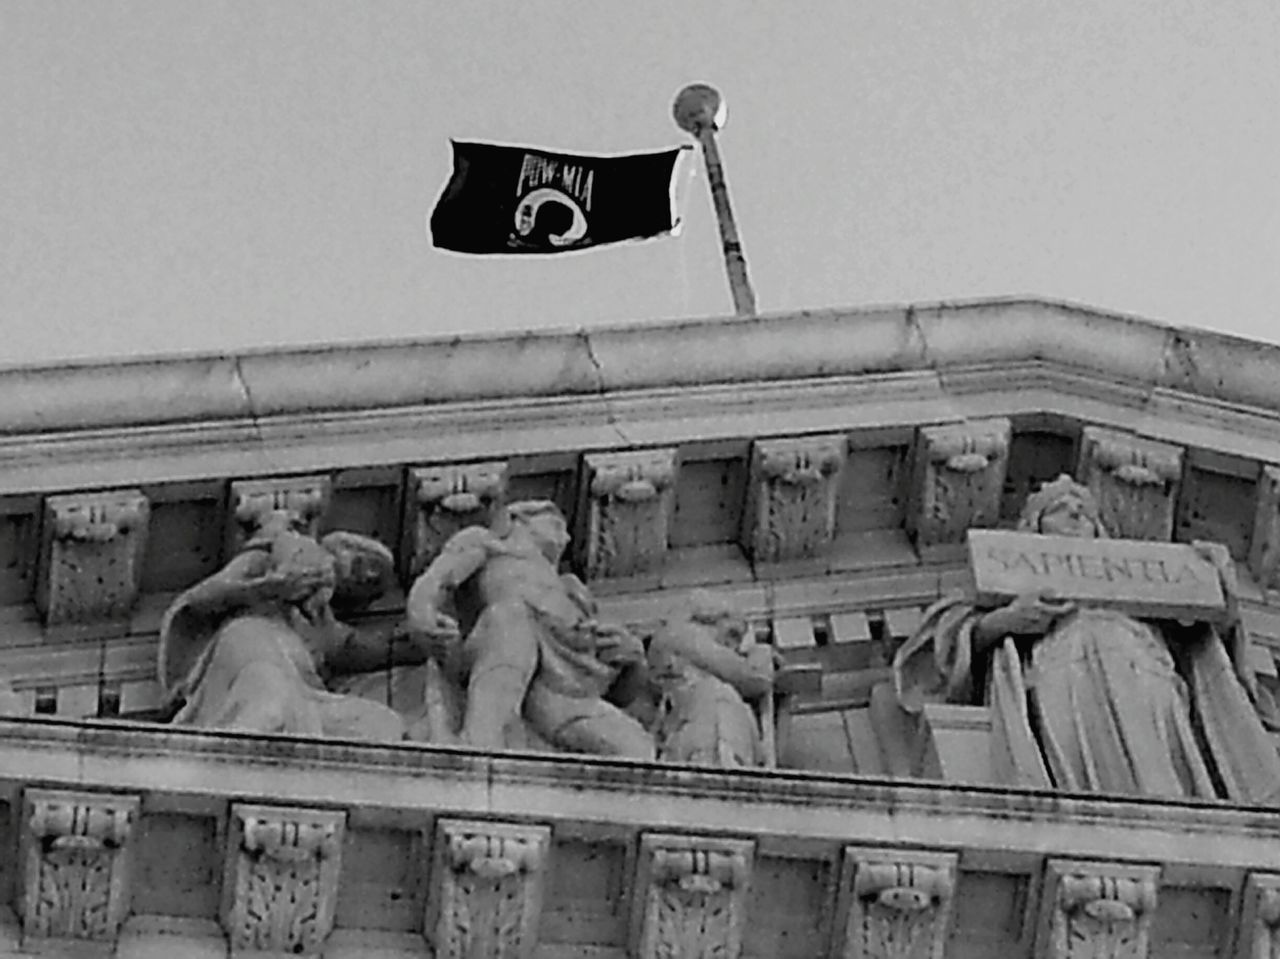 POW MIA Flags Latin Architecture Respect. Gone but never forgotten. Aneye4theshot EyeEm Best Shots